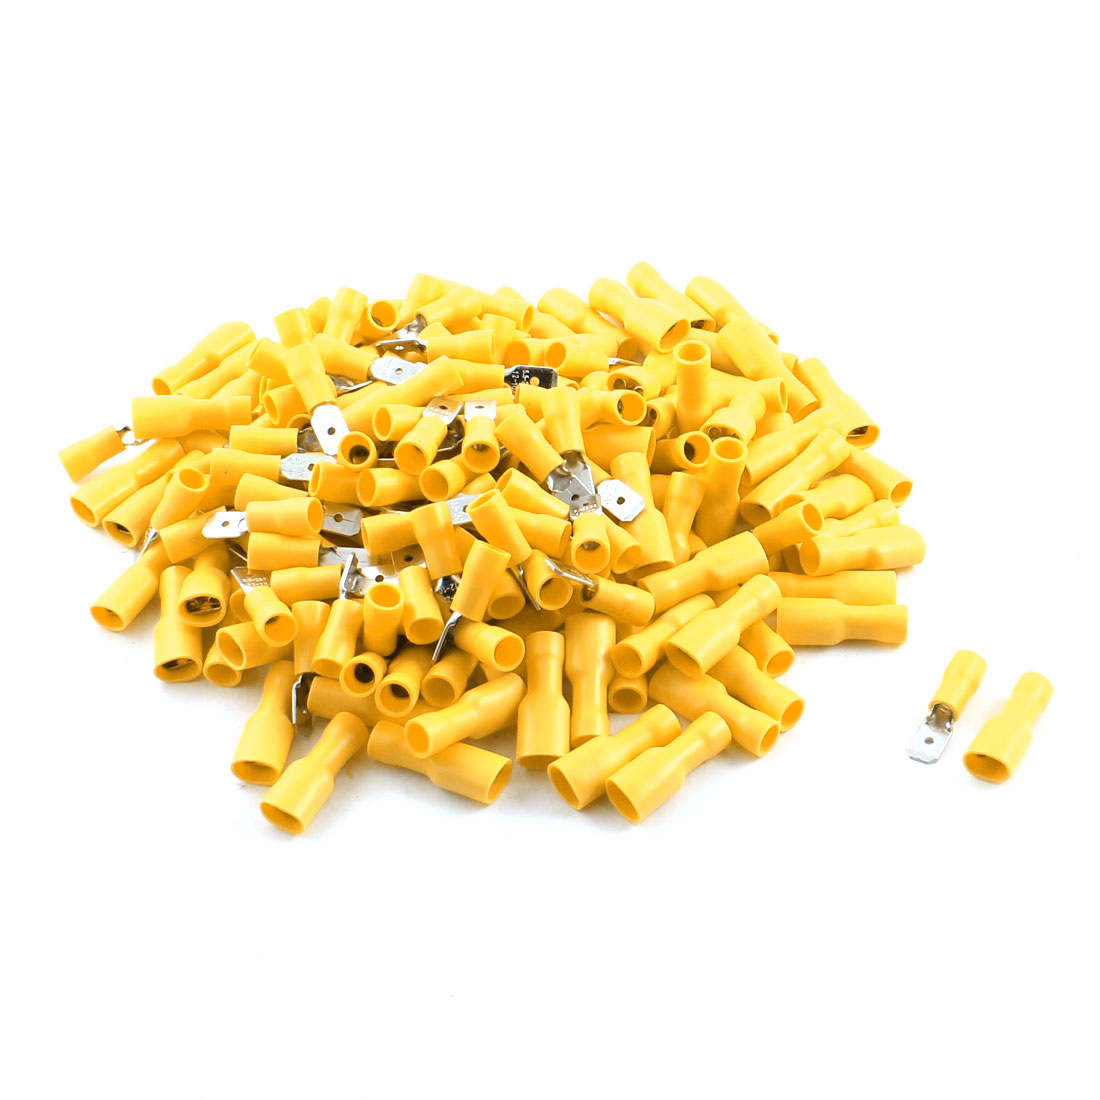 200Pcs Yellow Male Female Insulated Spade Crimp Terminals for AWG 12-10 Cable